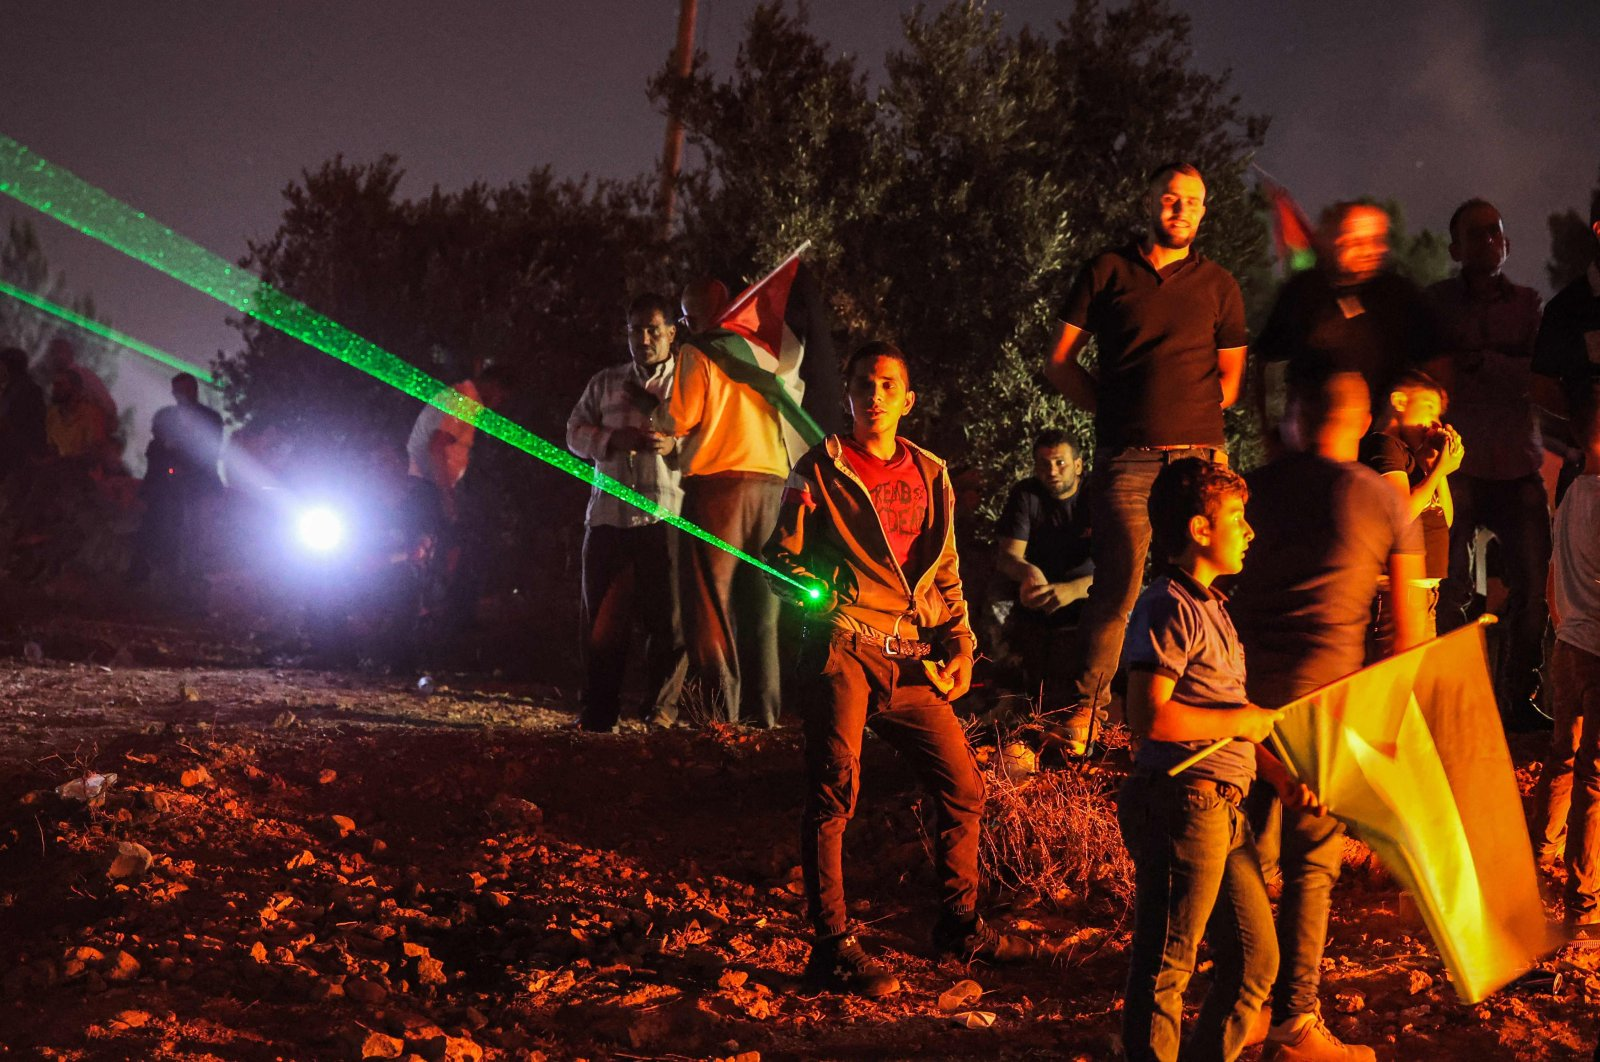 Palestinian protesters use high-powered lasers during a demonstration against the Israeli illegal settlers' outpost of Eviatar, in the town of Beita, near the occupied West Bank city of Nablus, occupied Palestine, July 1, 2021. (AFP Photo)